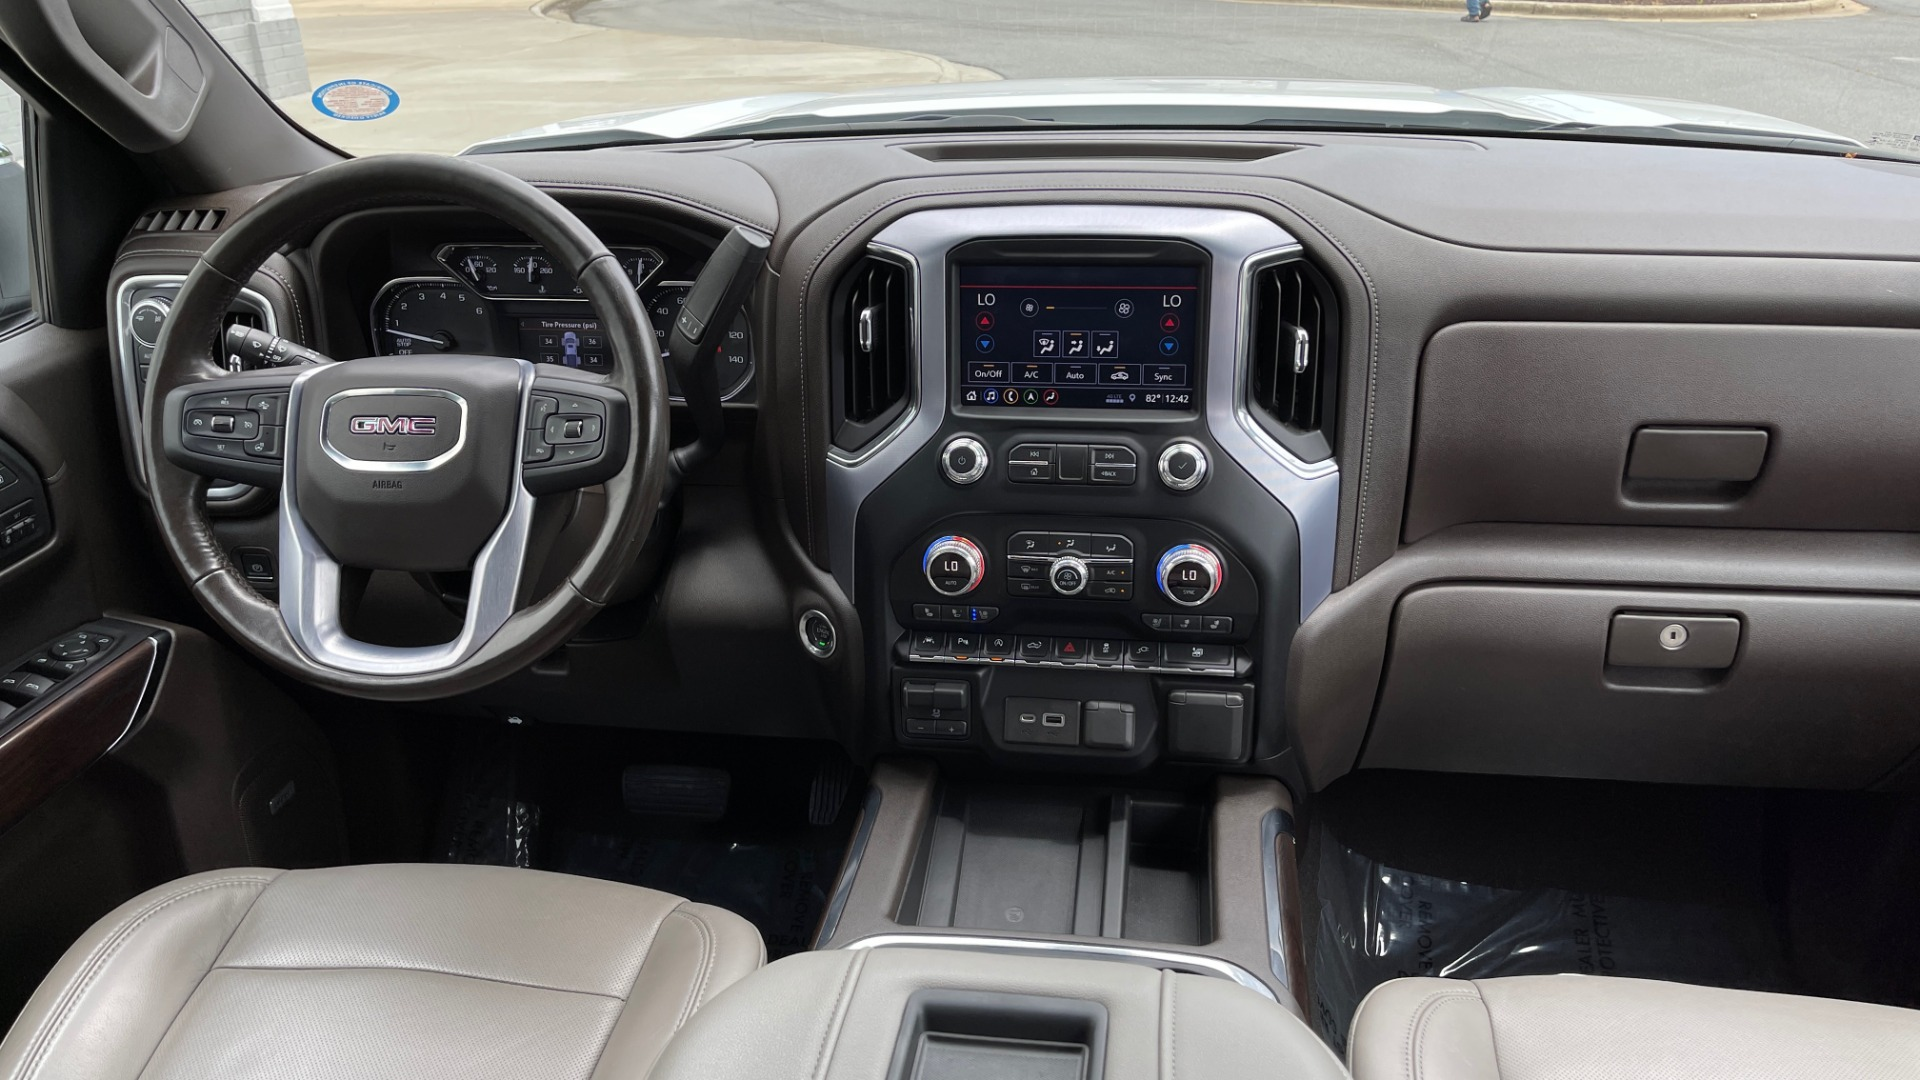 Used 2019 GMC SIERRA 1500 SLT 4X4 CREWCAB / 5.3L V8 / 8-SPD AUTO / NAV / BOSE / REARVIEW for sale $49,999 at Formula Imports in Charlotte NC 28227 79